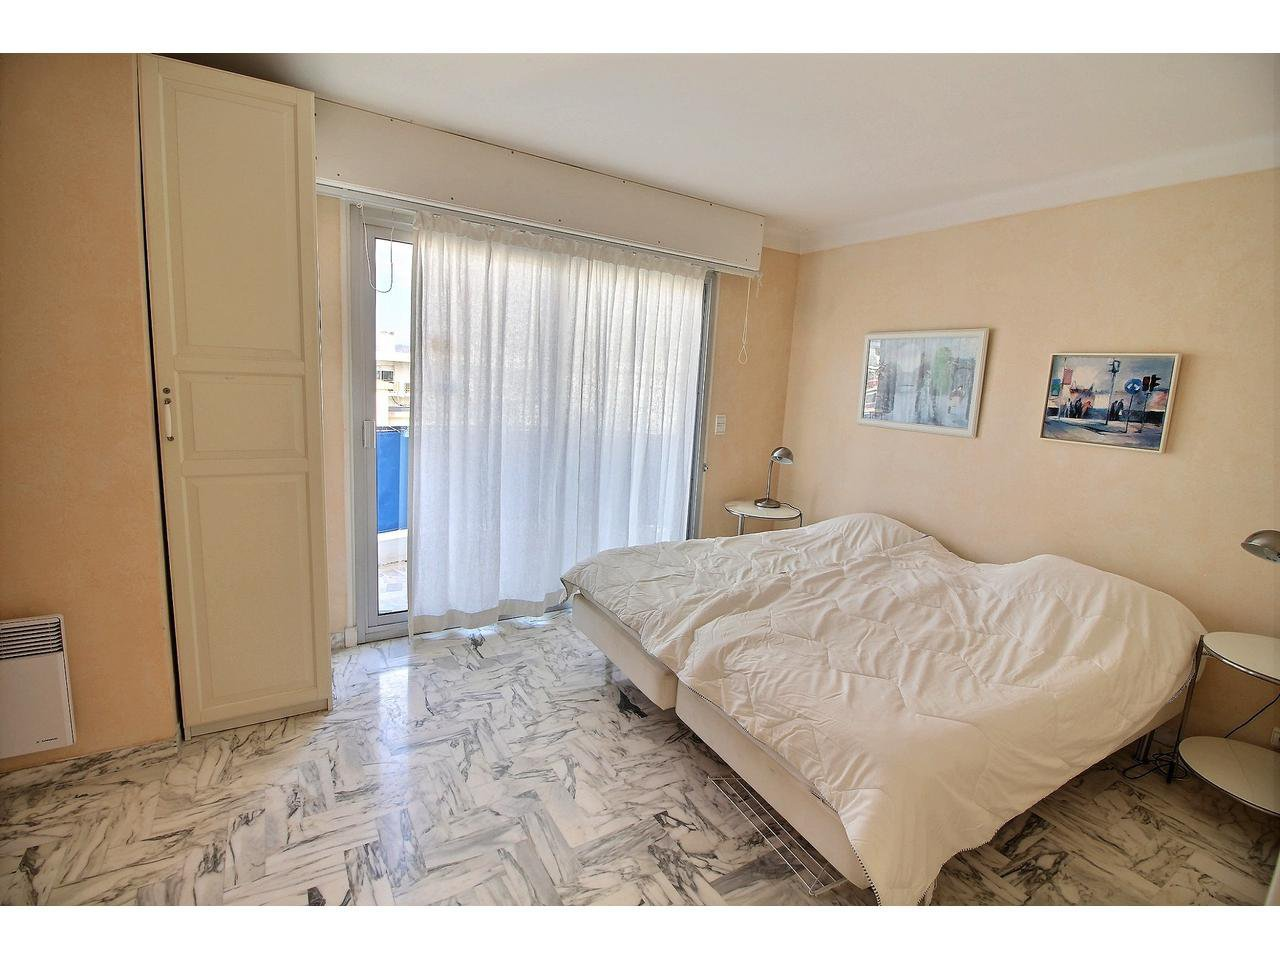 Cannes Palm Beach Port Canto last floor apartment for sale terrace bedroom